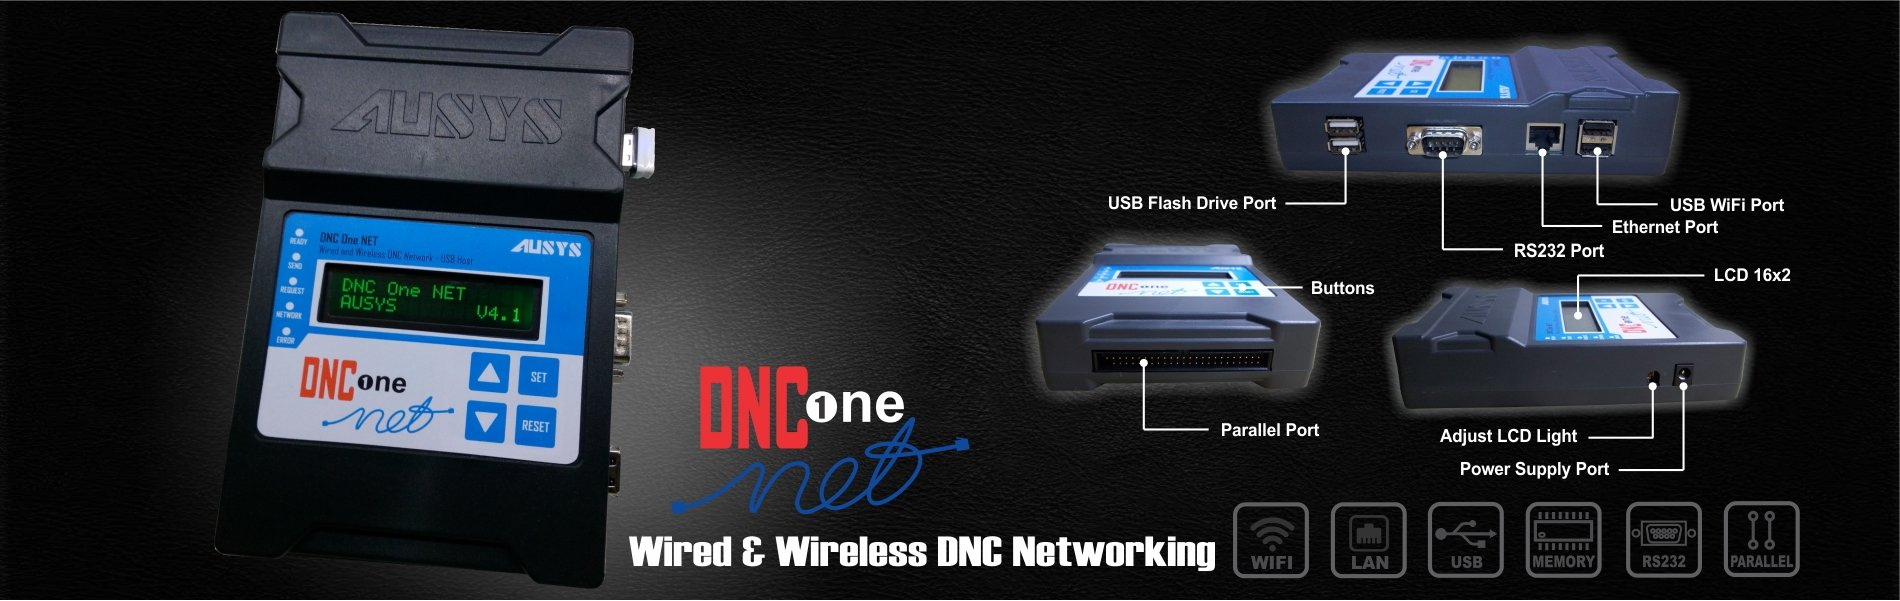 DNC One NET _VN